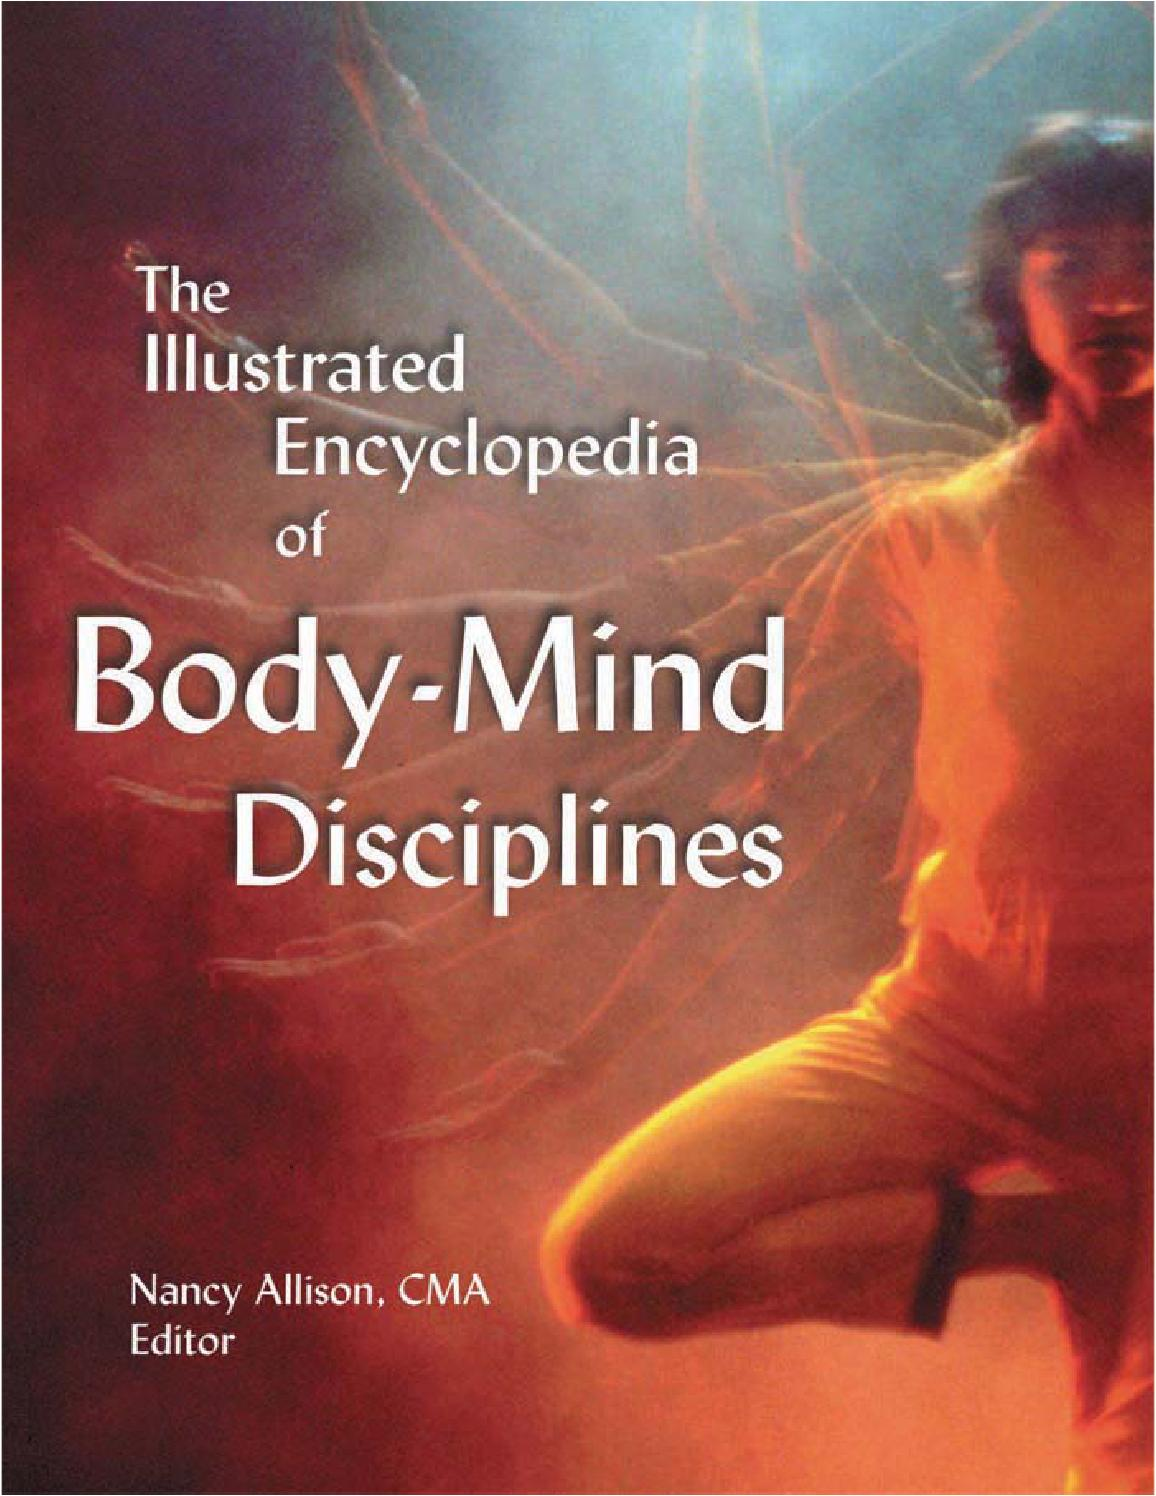 Nancy allison the illustrated encyclopedia of body mind disciplines